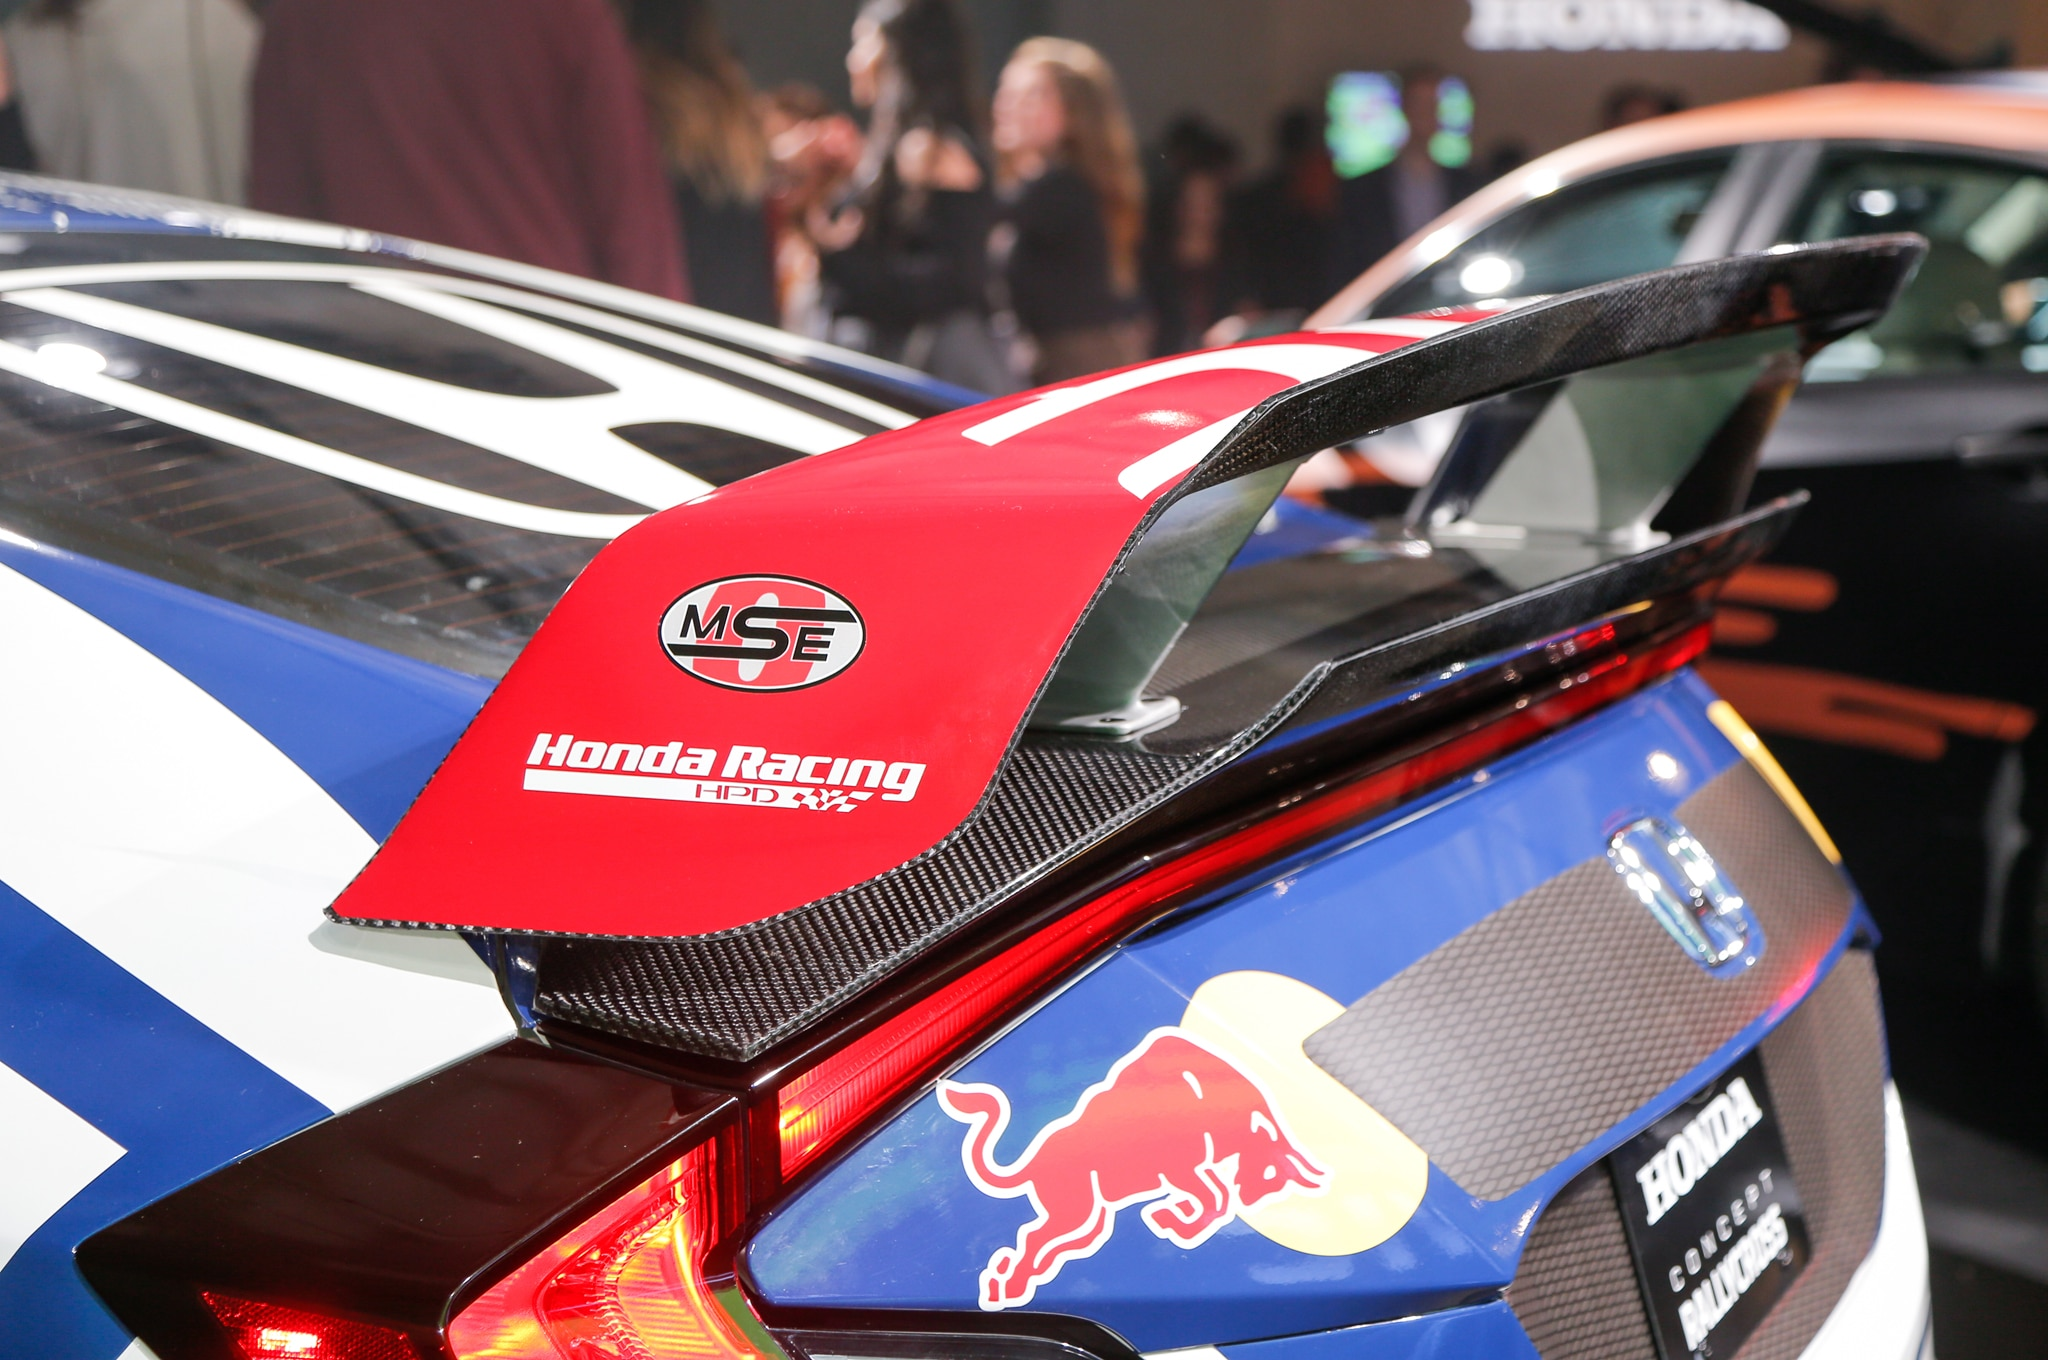 Grc Civic >> 2016 Honda Civic Coupe Global Rallycross Racing Car Revealed